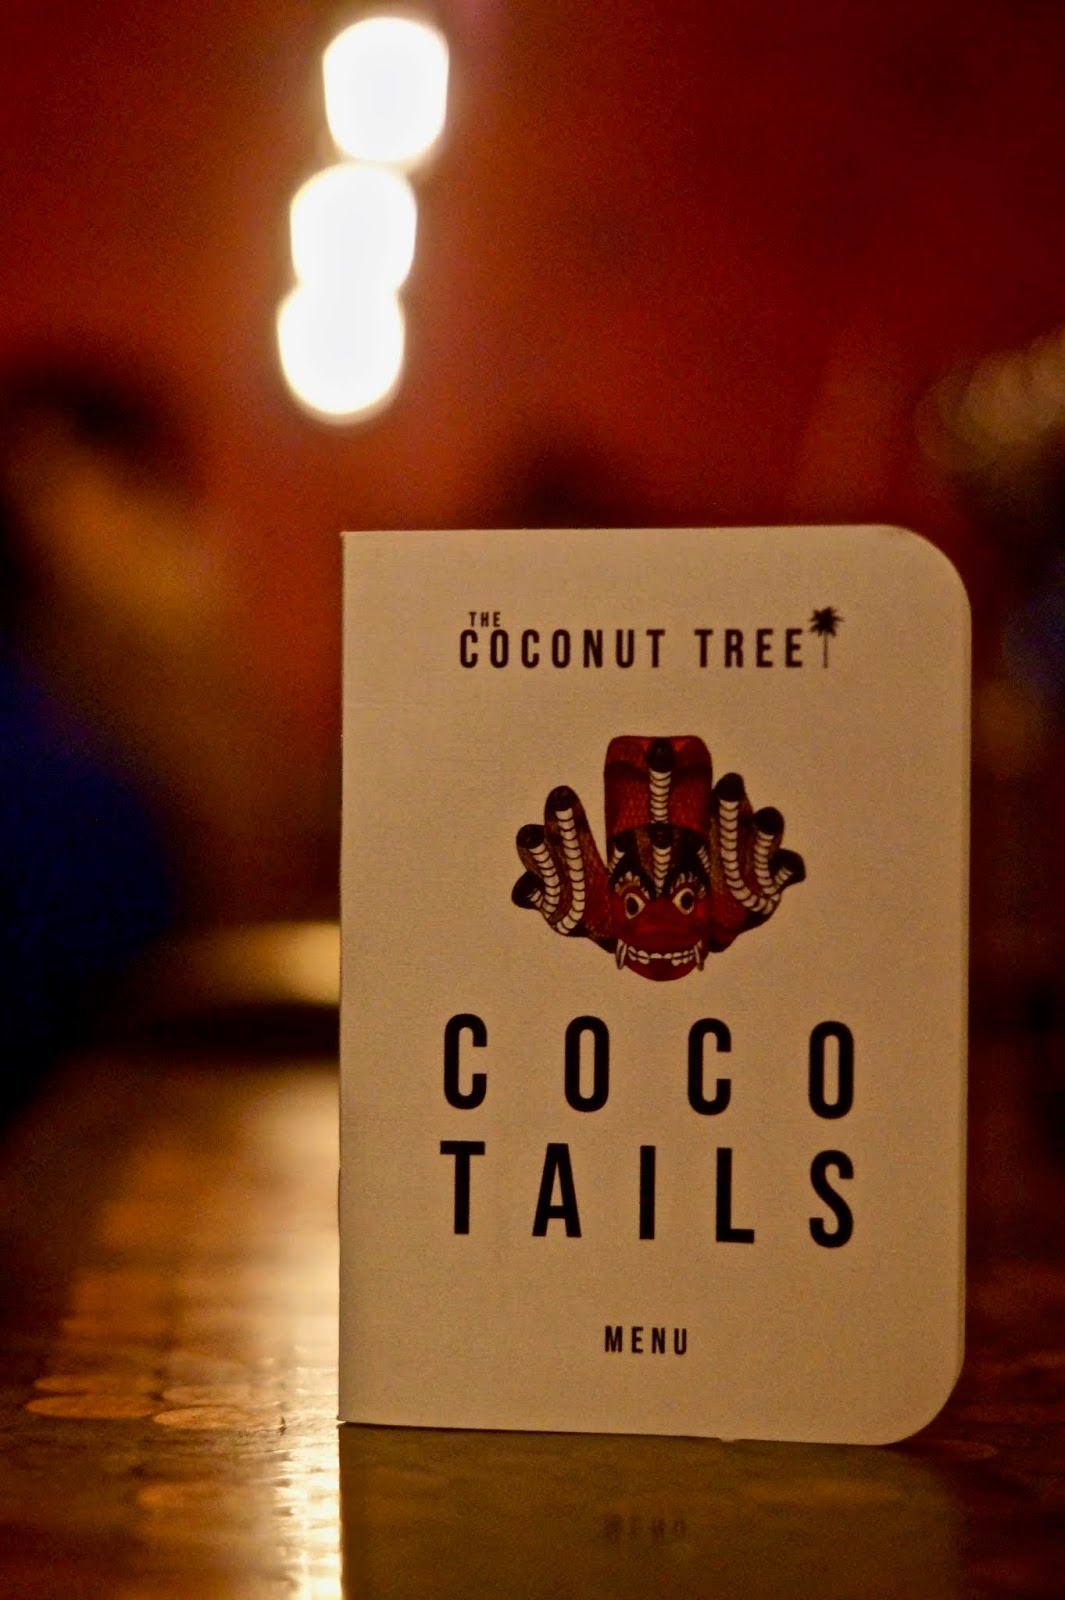 the coconut tree cocktaill menu